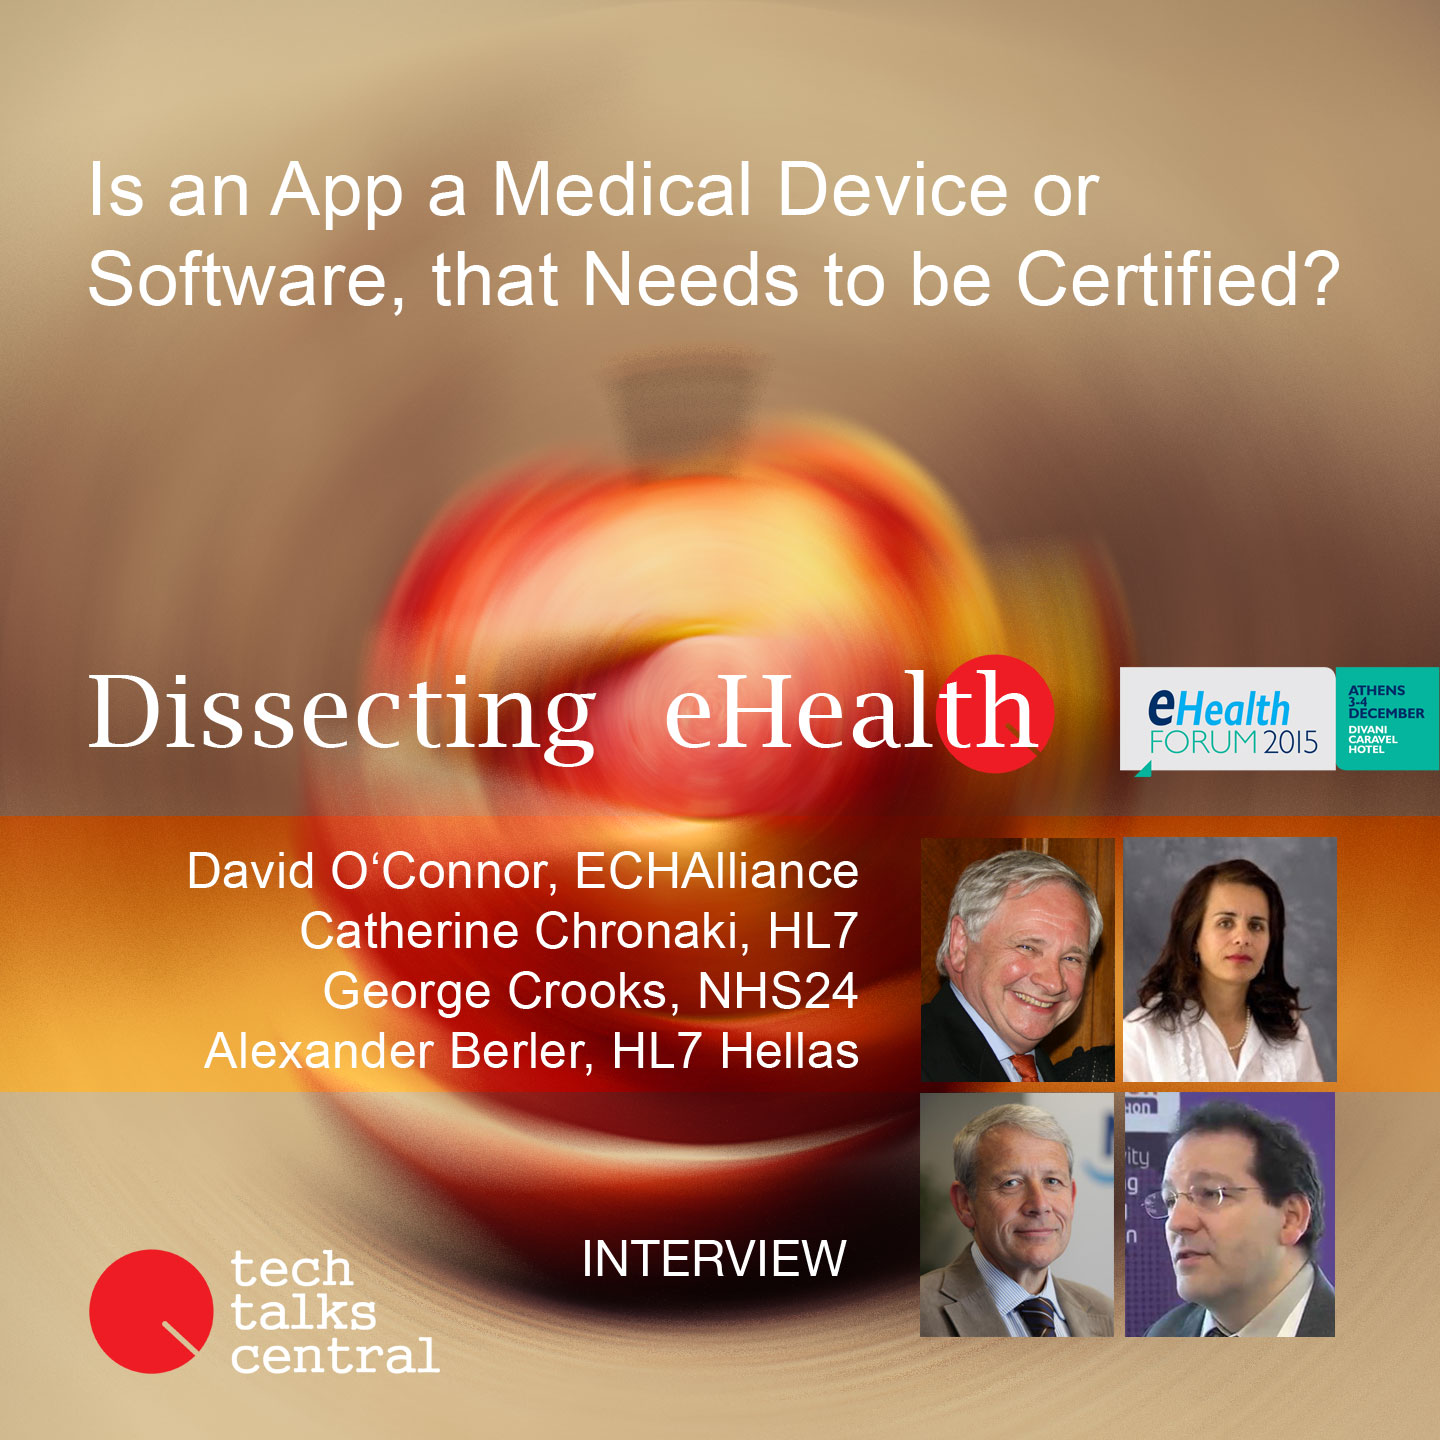 Is an App a Medical Device or Software that Needs to be Certified?